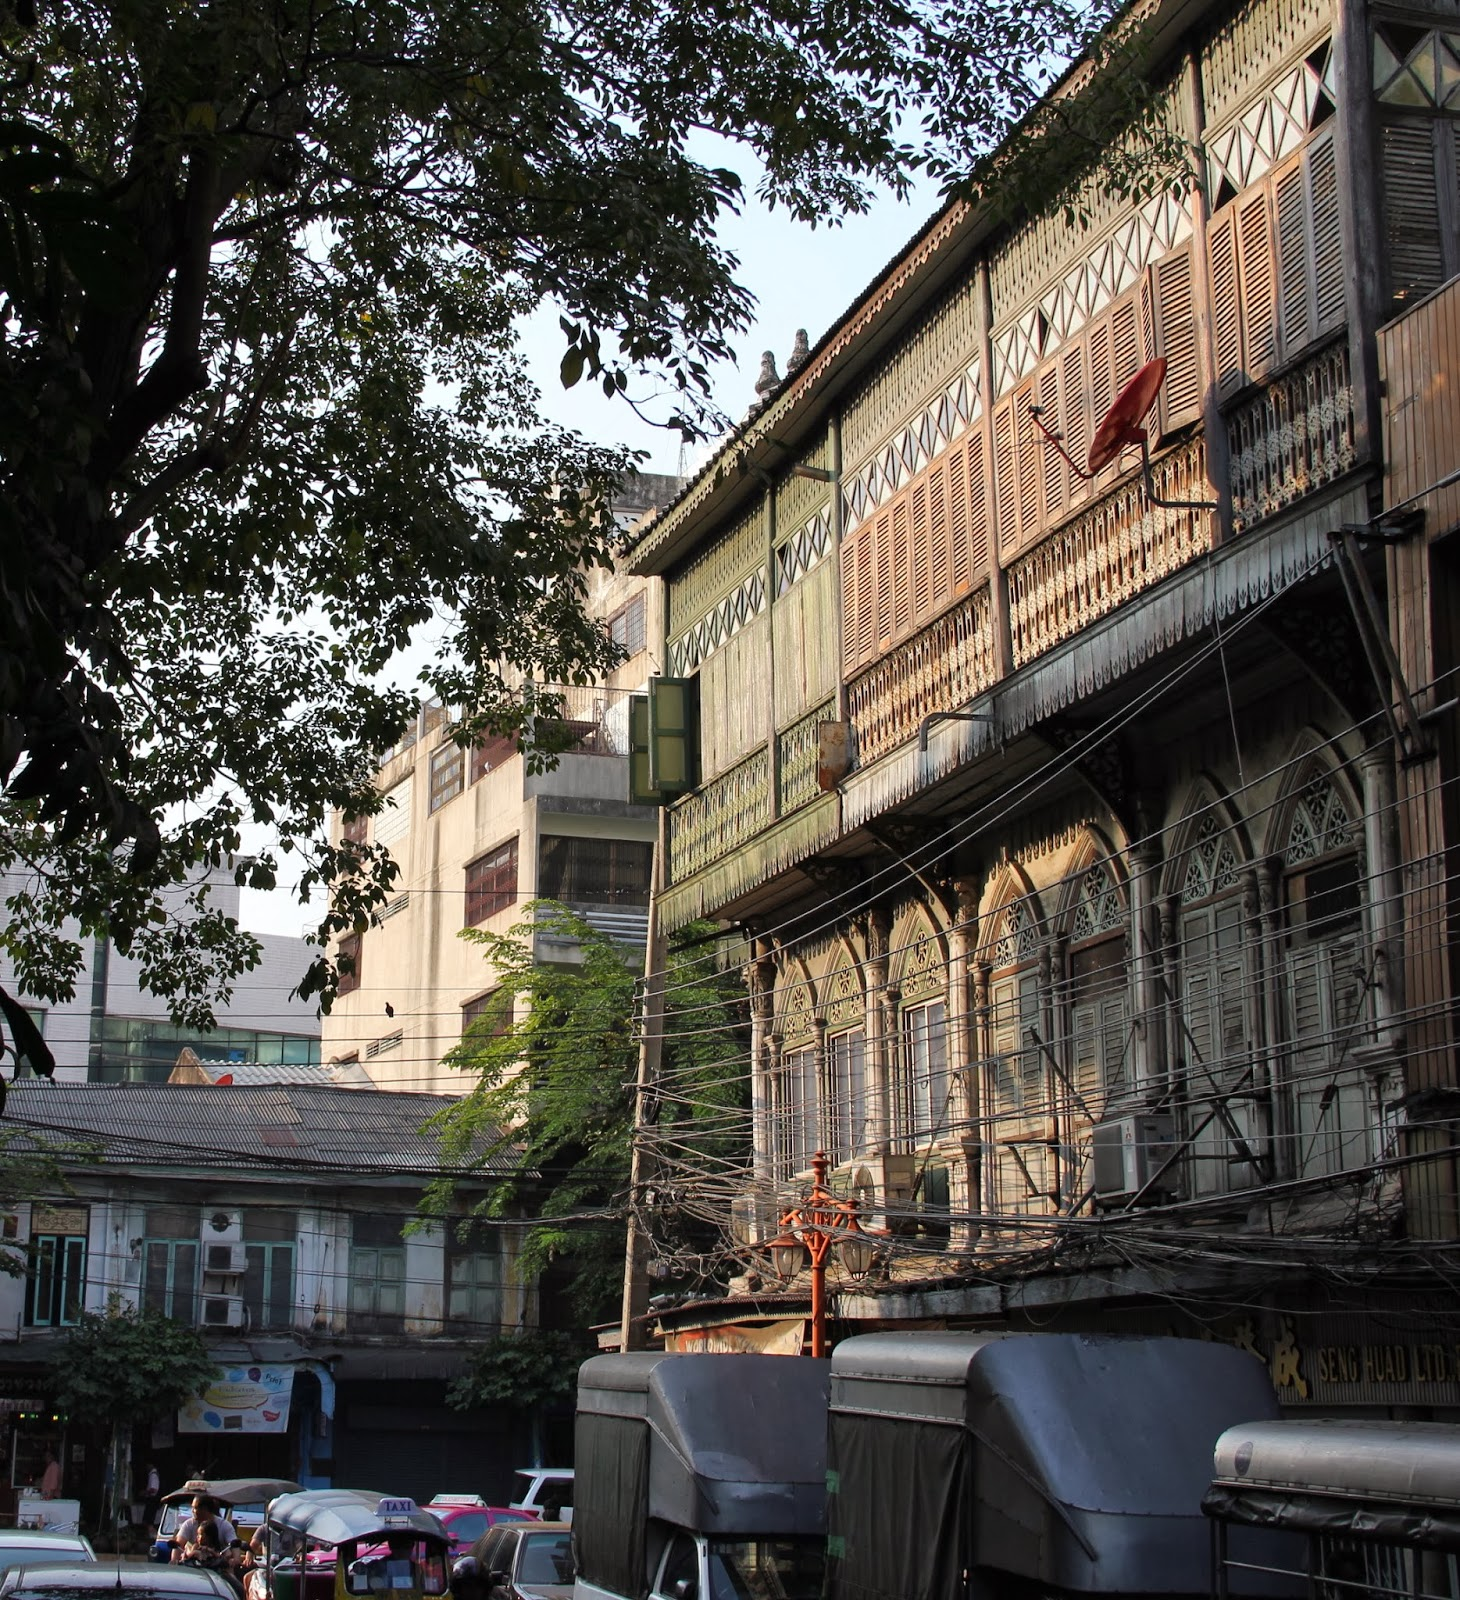 Historic buildings in Bangkok's Chinatown.